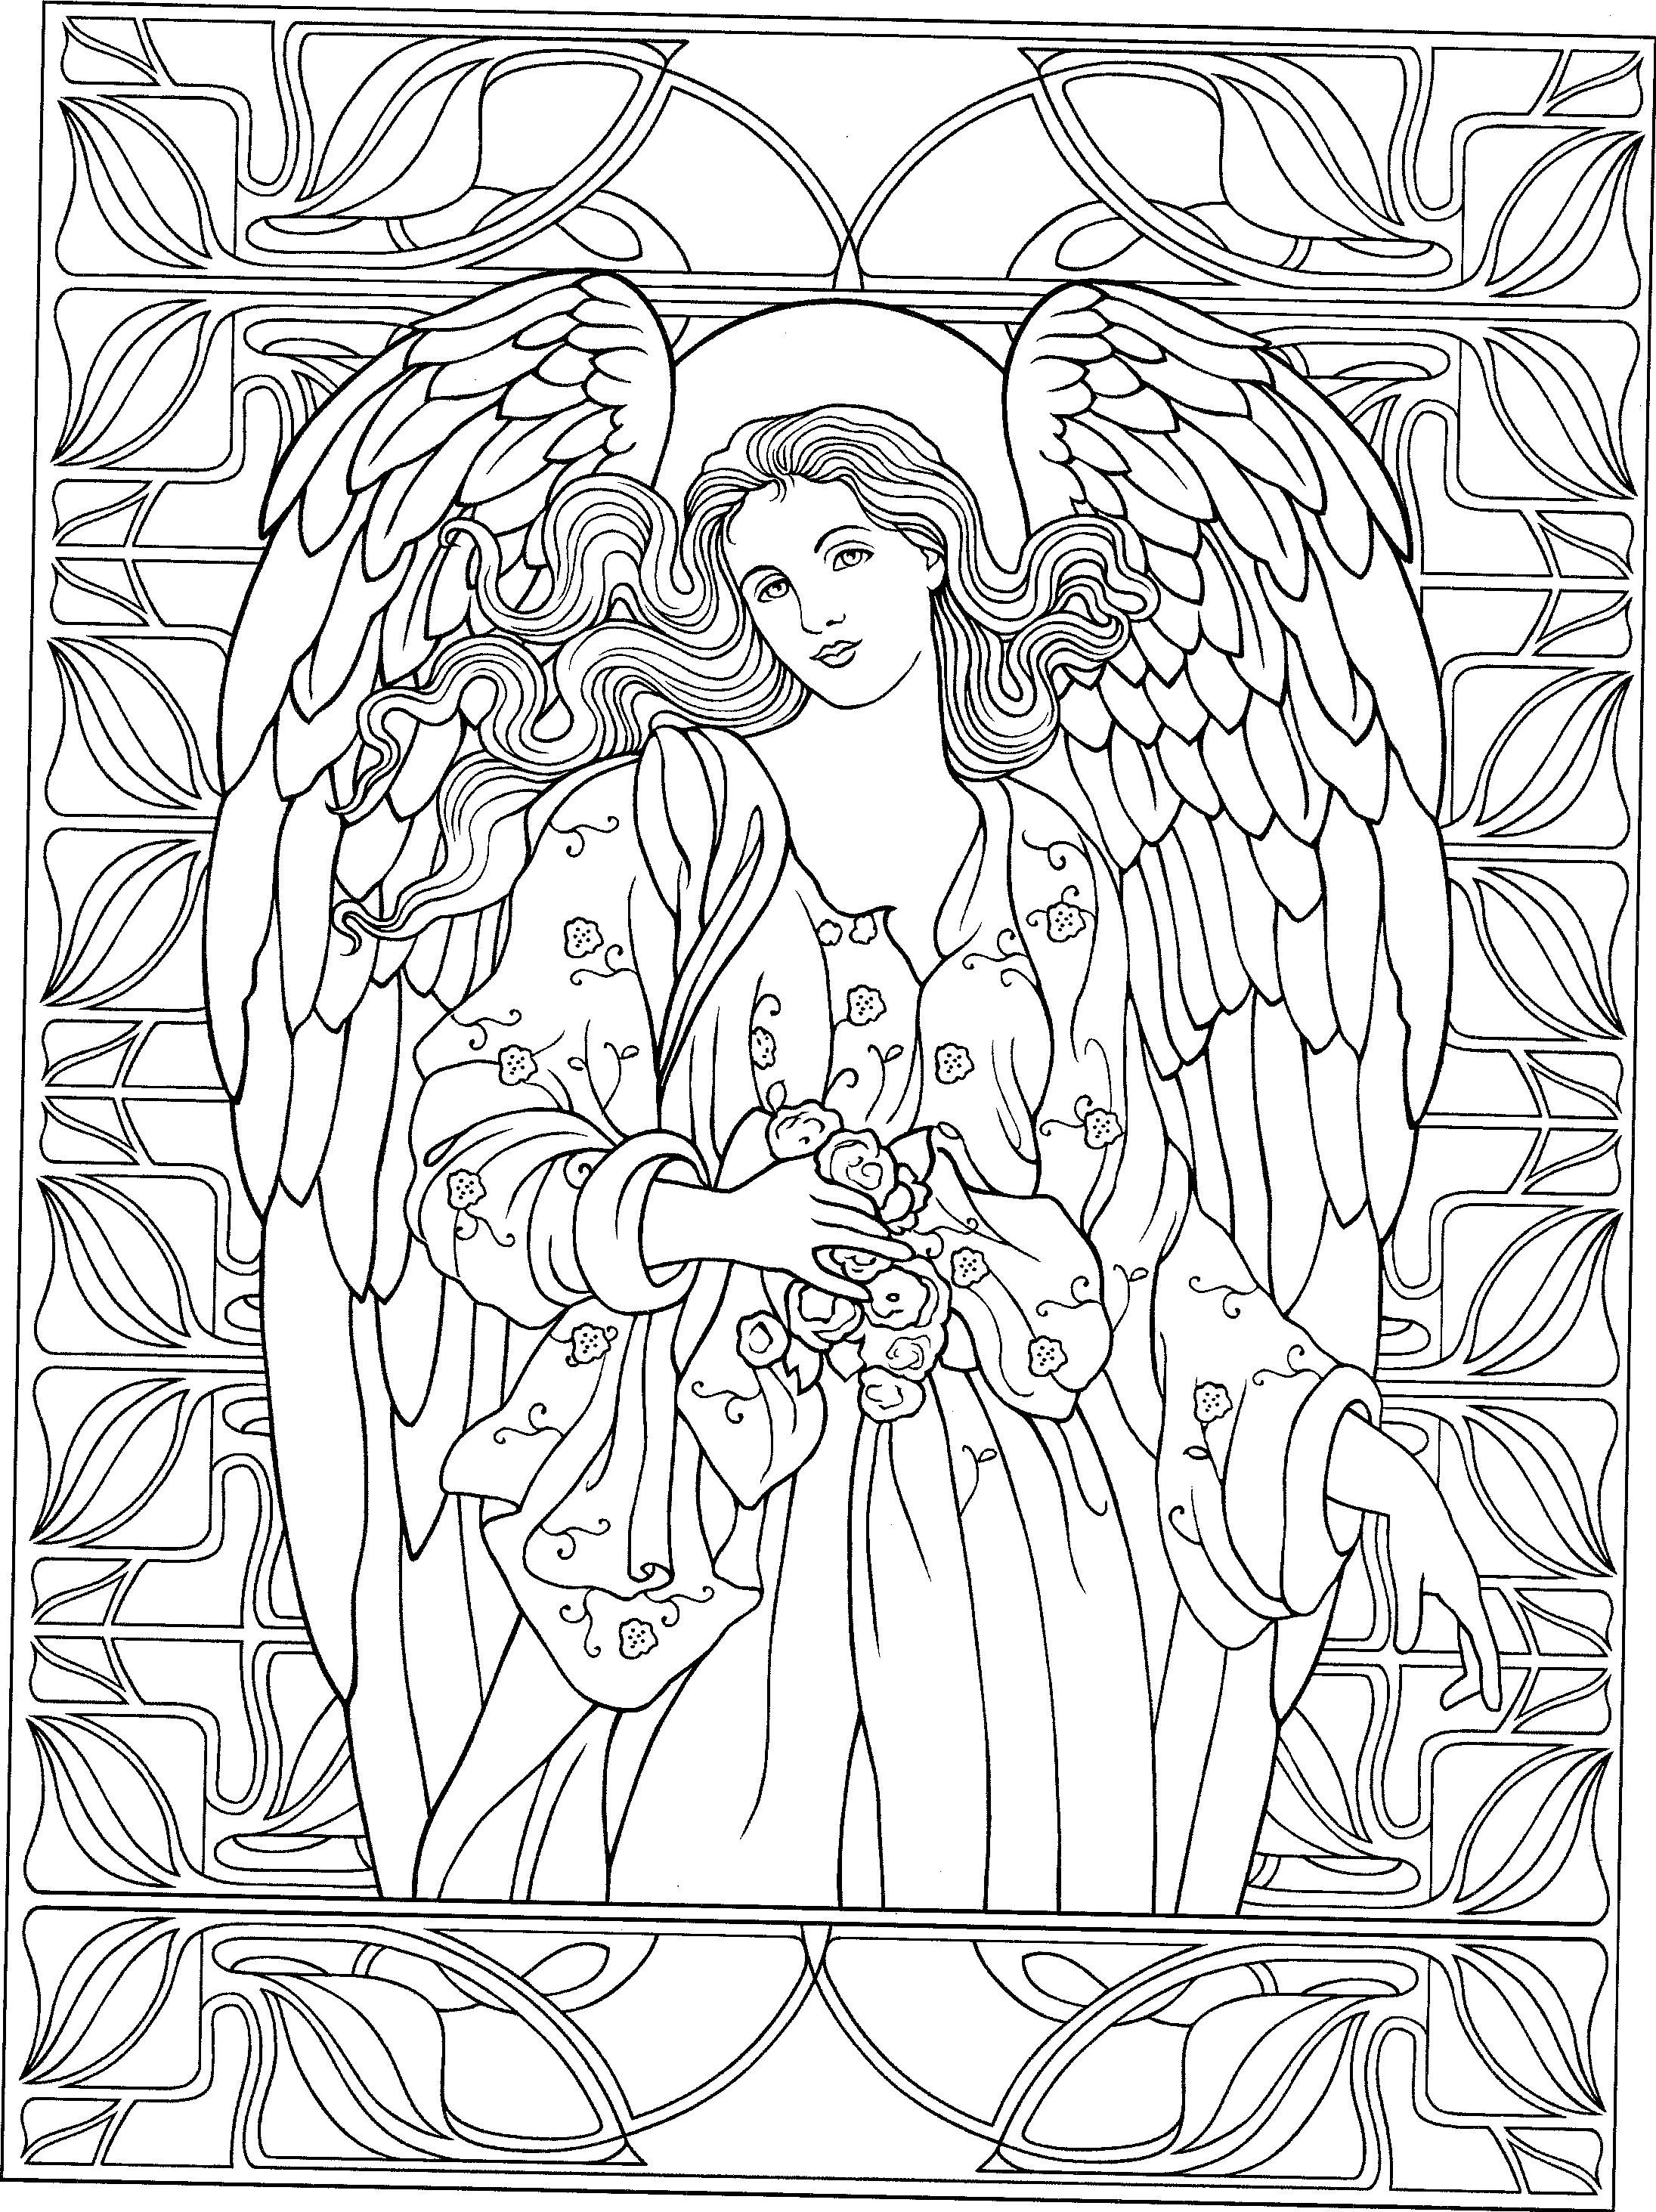 coloring pages angels - photo#41